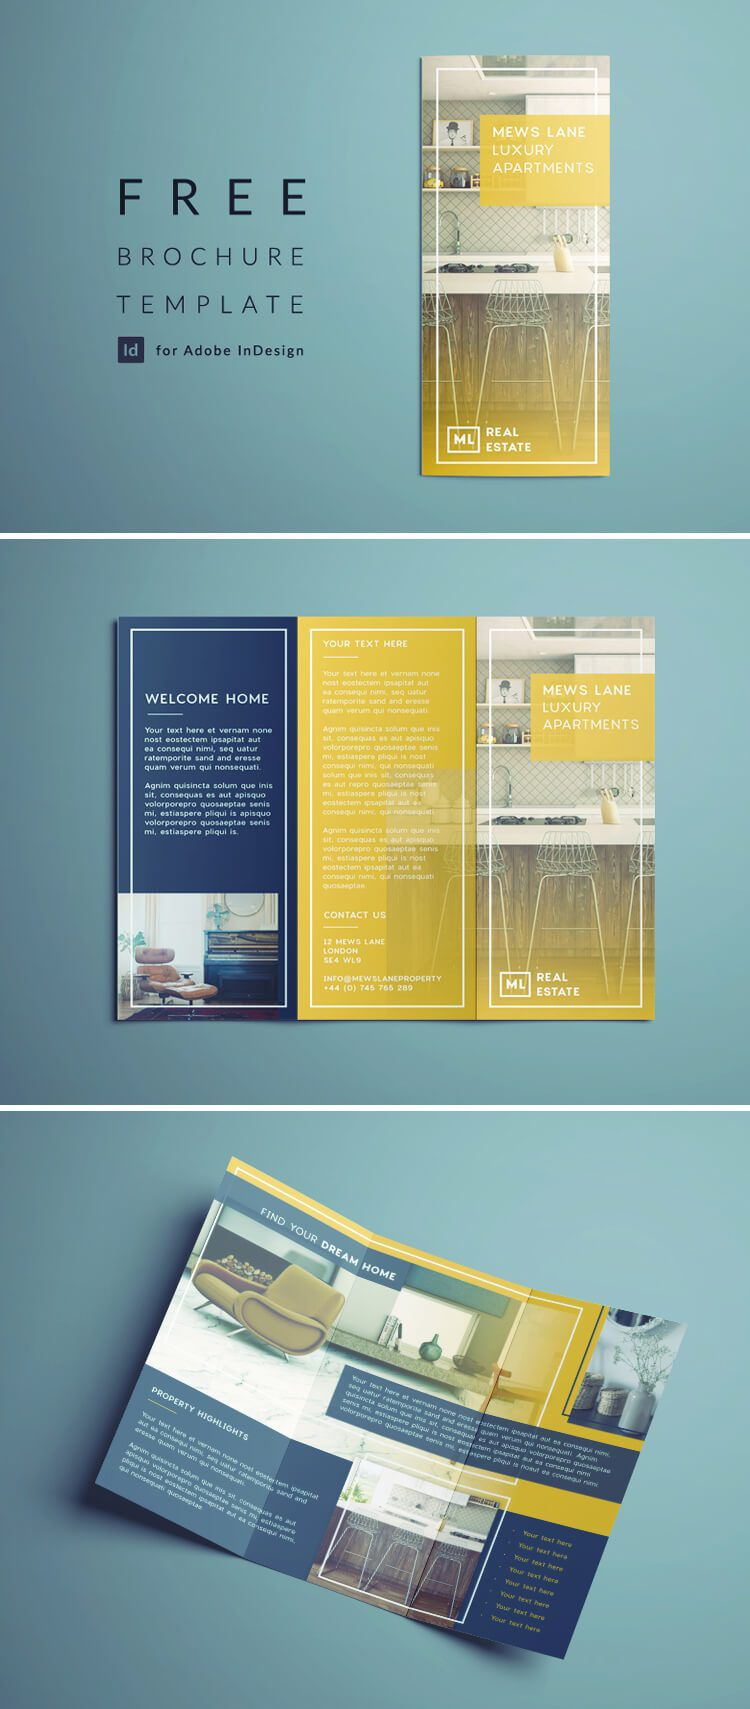 007 Outstanding Indesign Trifold Brochure Template Image  Templates Adobe Tri Fold Bi Free DownloadFull